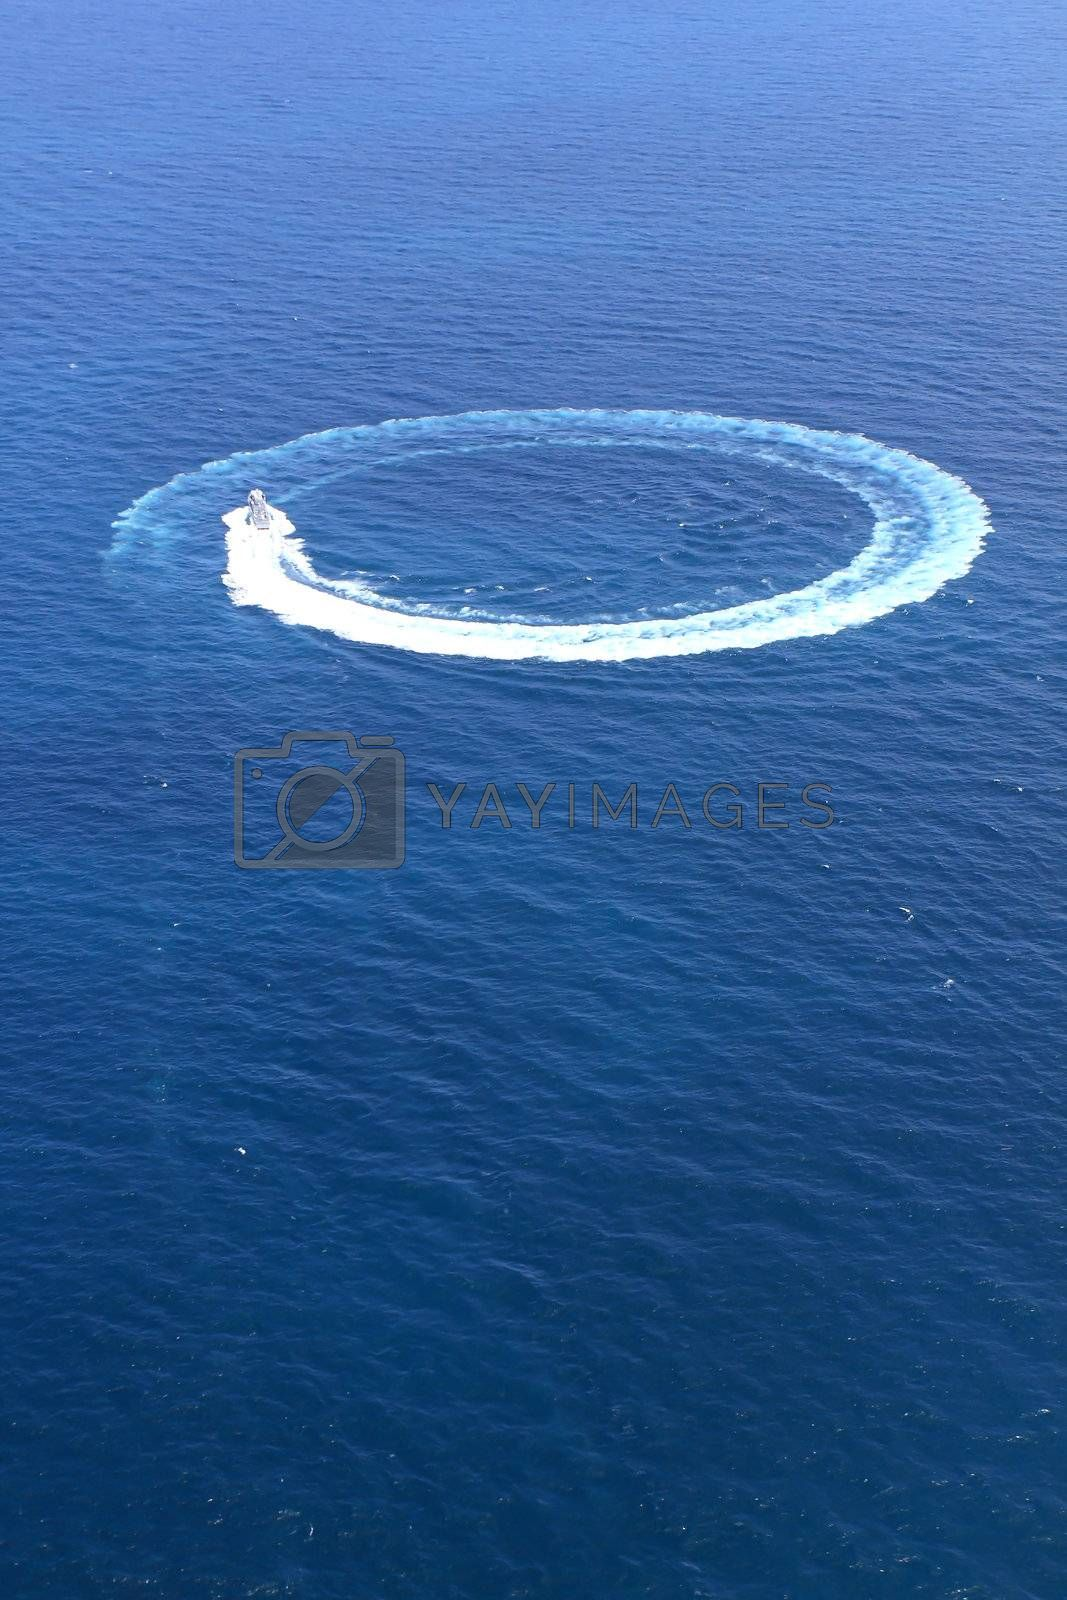 Speedboat in the sea ran circles.